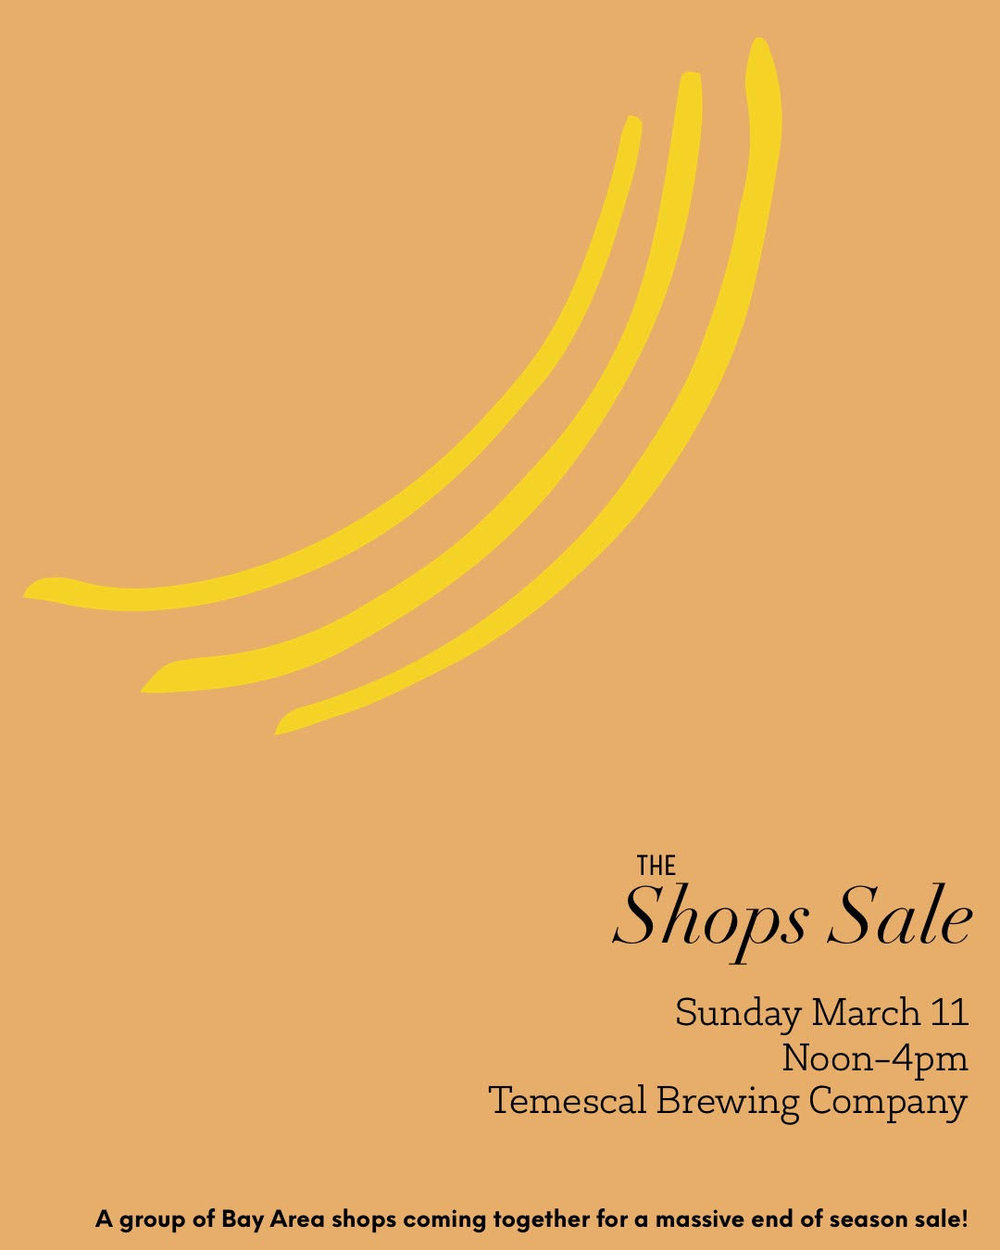 Join us Sunday, March 11 at Temescal Brewing Company in Oakland as we pop up with a group of other locally owned shops for a super sales shopping experience. Each shop will be bringing a rack of past styles marked at a steep discount. Help us all make room for our new Spring merchandise in our shops and snag beautiful tops, dress, jackets and more for a steal. Men's and women's items will be marked 50-80% off! This is a bi-annual event and you won't find discounted prices like this anywhere else.   Here are a list of shops participating. Check back for updates: hygge-  hyggedesign.xyz  gather -  gathersf.com  Neeko -  shopneeko.com  Dandelion Post -  dandelionpost.com  Oak Common -  oakcommon.com  Tonle -  tonle.com